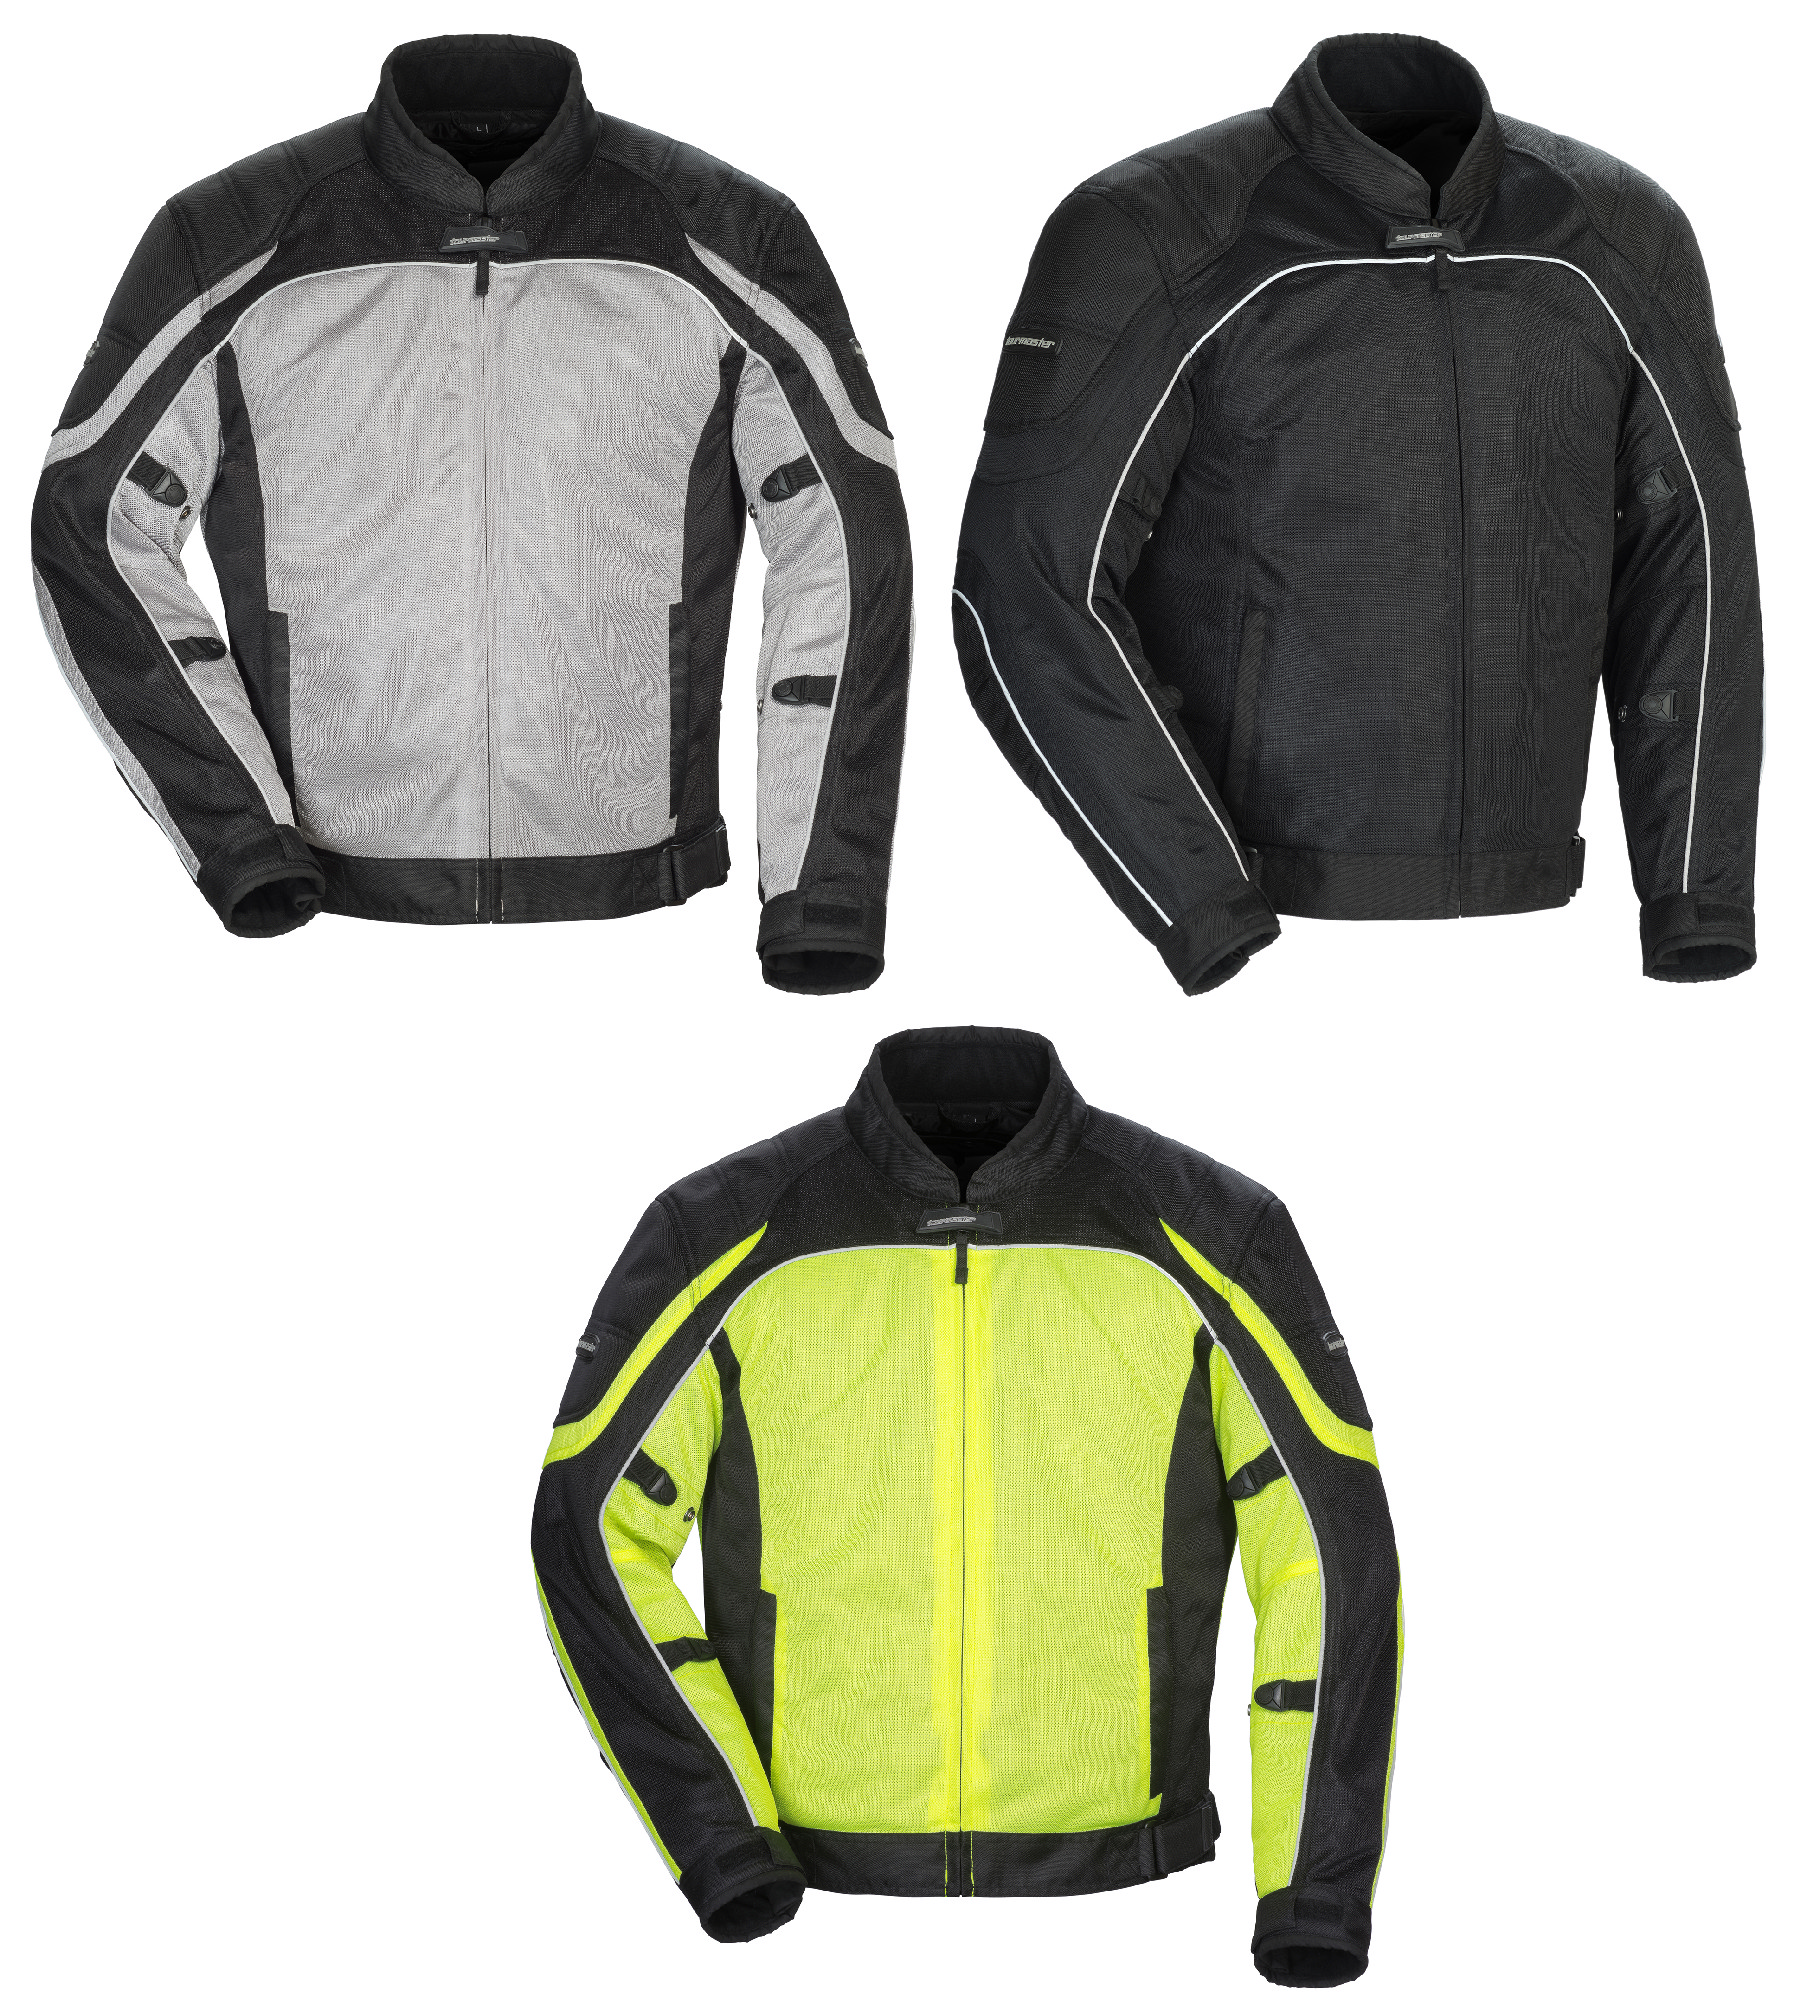 More Size and Color Options Tourmaster Intake Air 5.0 Mens Summer Mesh Jacket Black//5X-Large